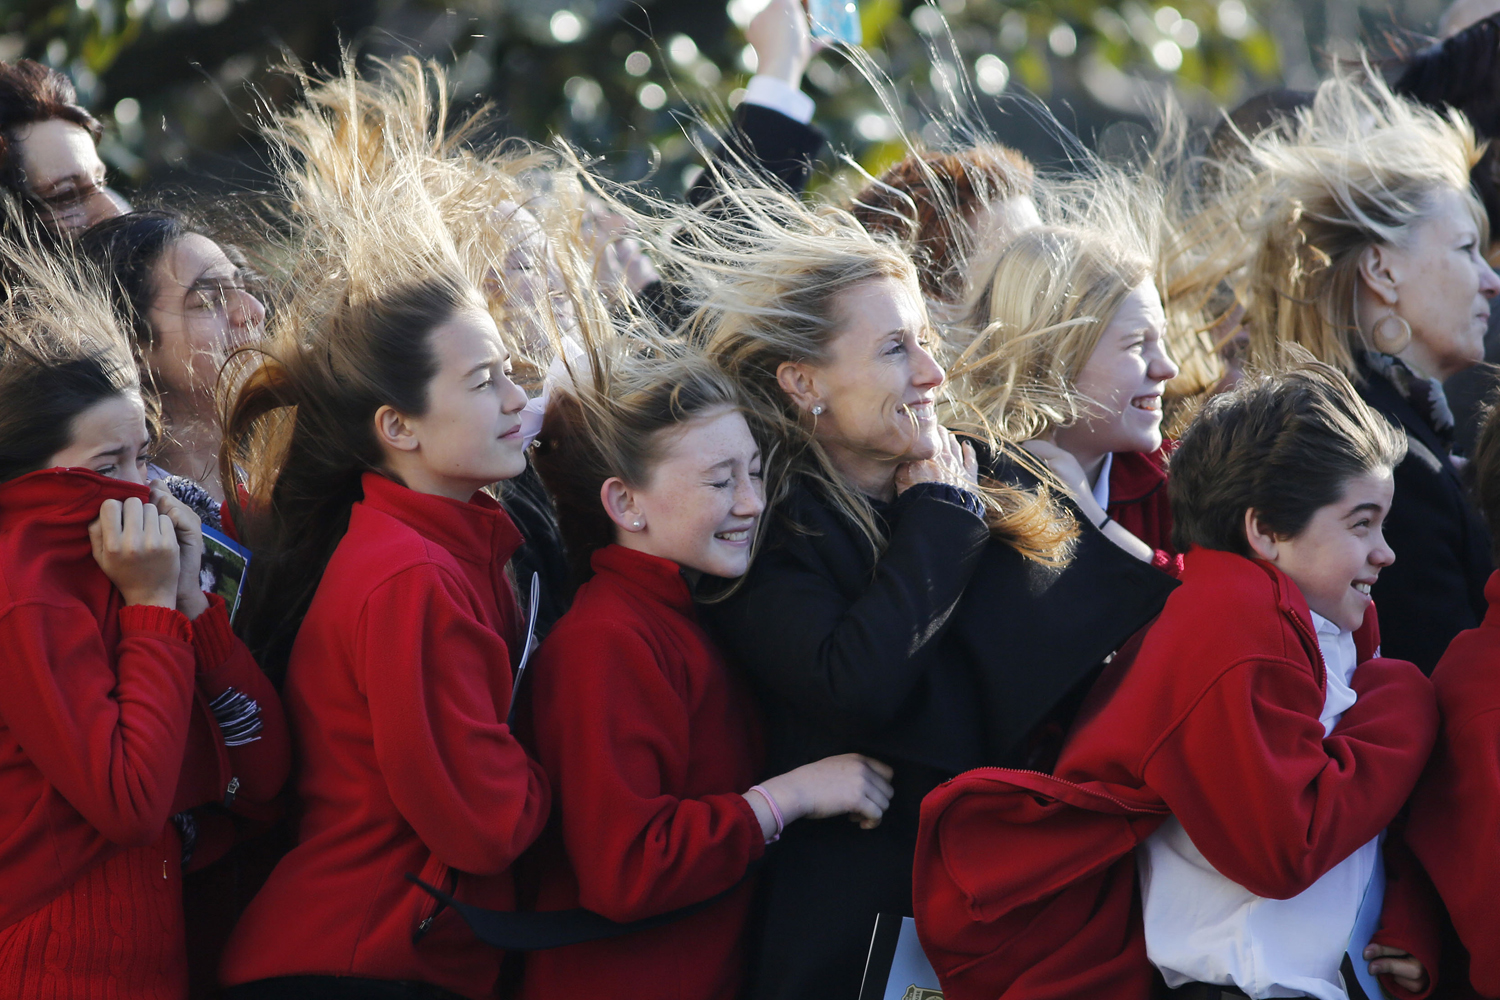 Jan. 29, 2013. Sixth grade students from the Park Maitland School in Maitland, Florida, watch as Marine One carrying U.S. President Barack Obama takes off from the South Lawn at the White House in Washington as he departs for Las Vegas.